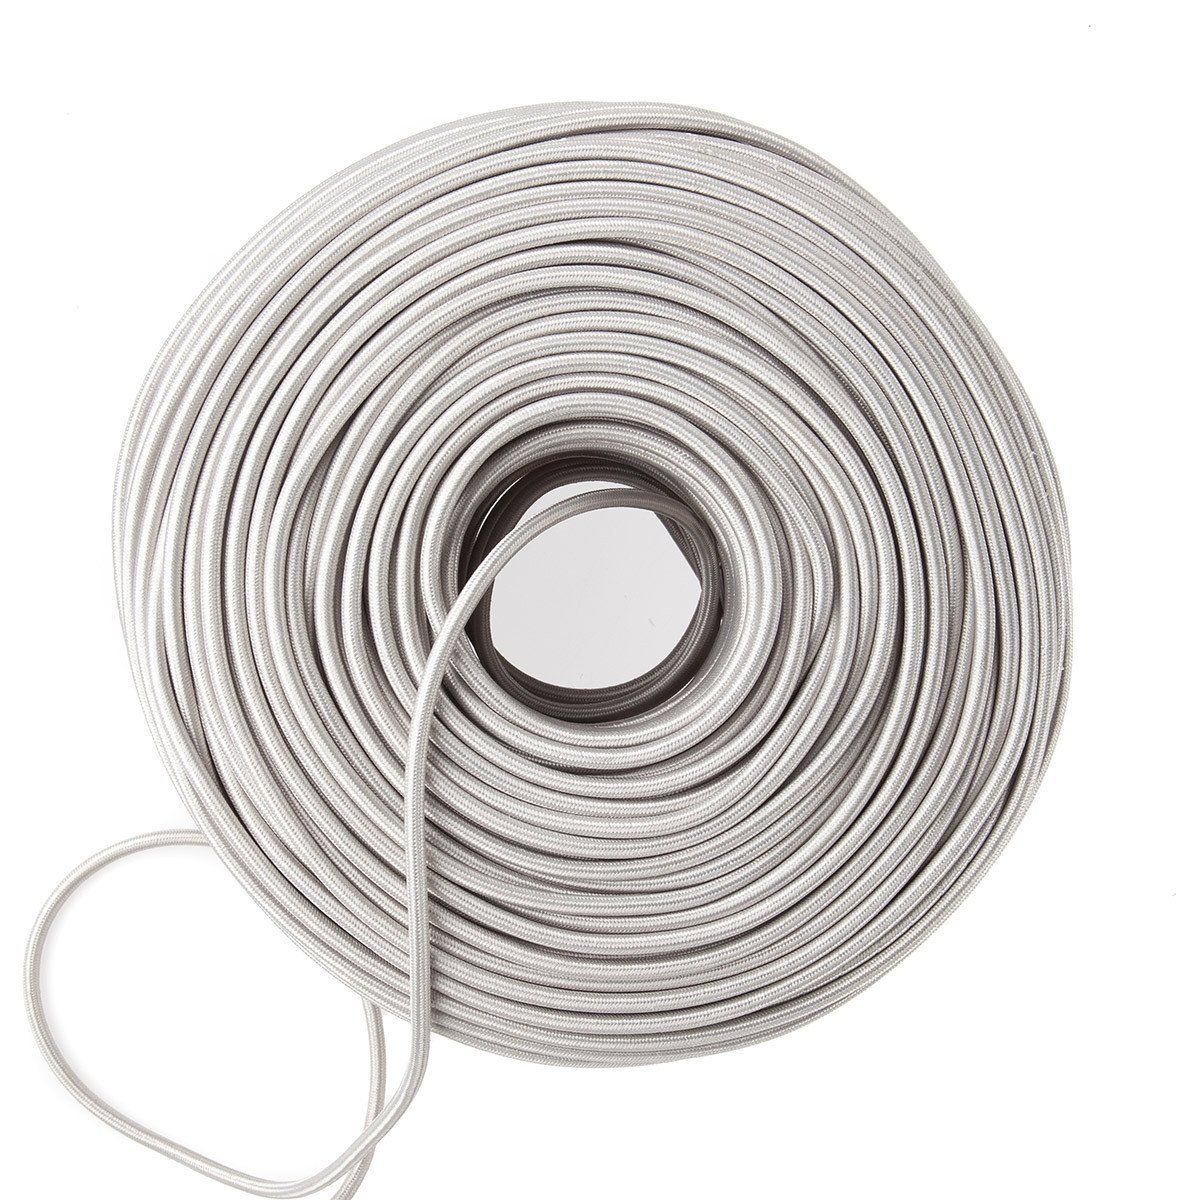 Cloth Covered Electrical Wire - Sterling Silver | Color Cord Company